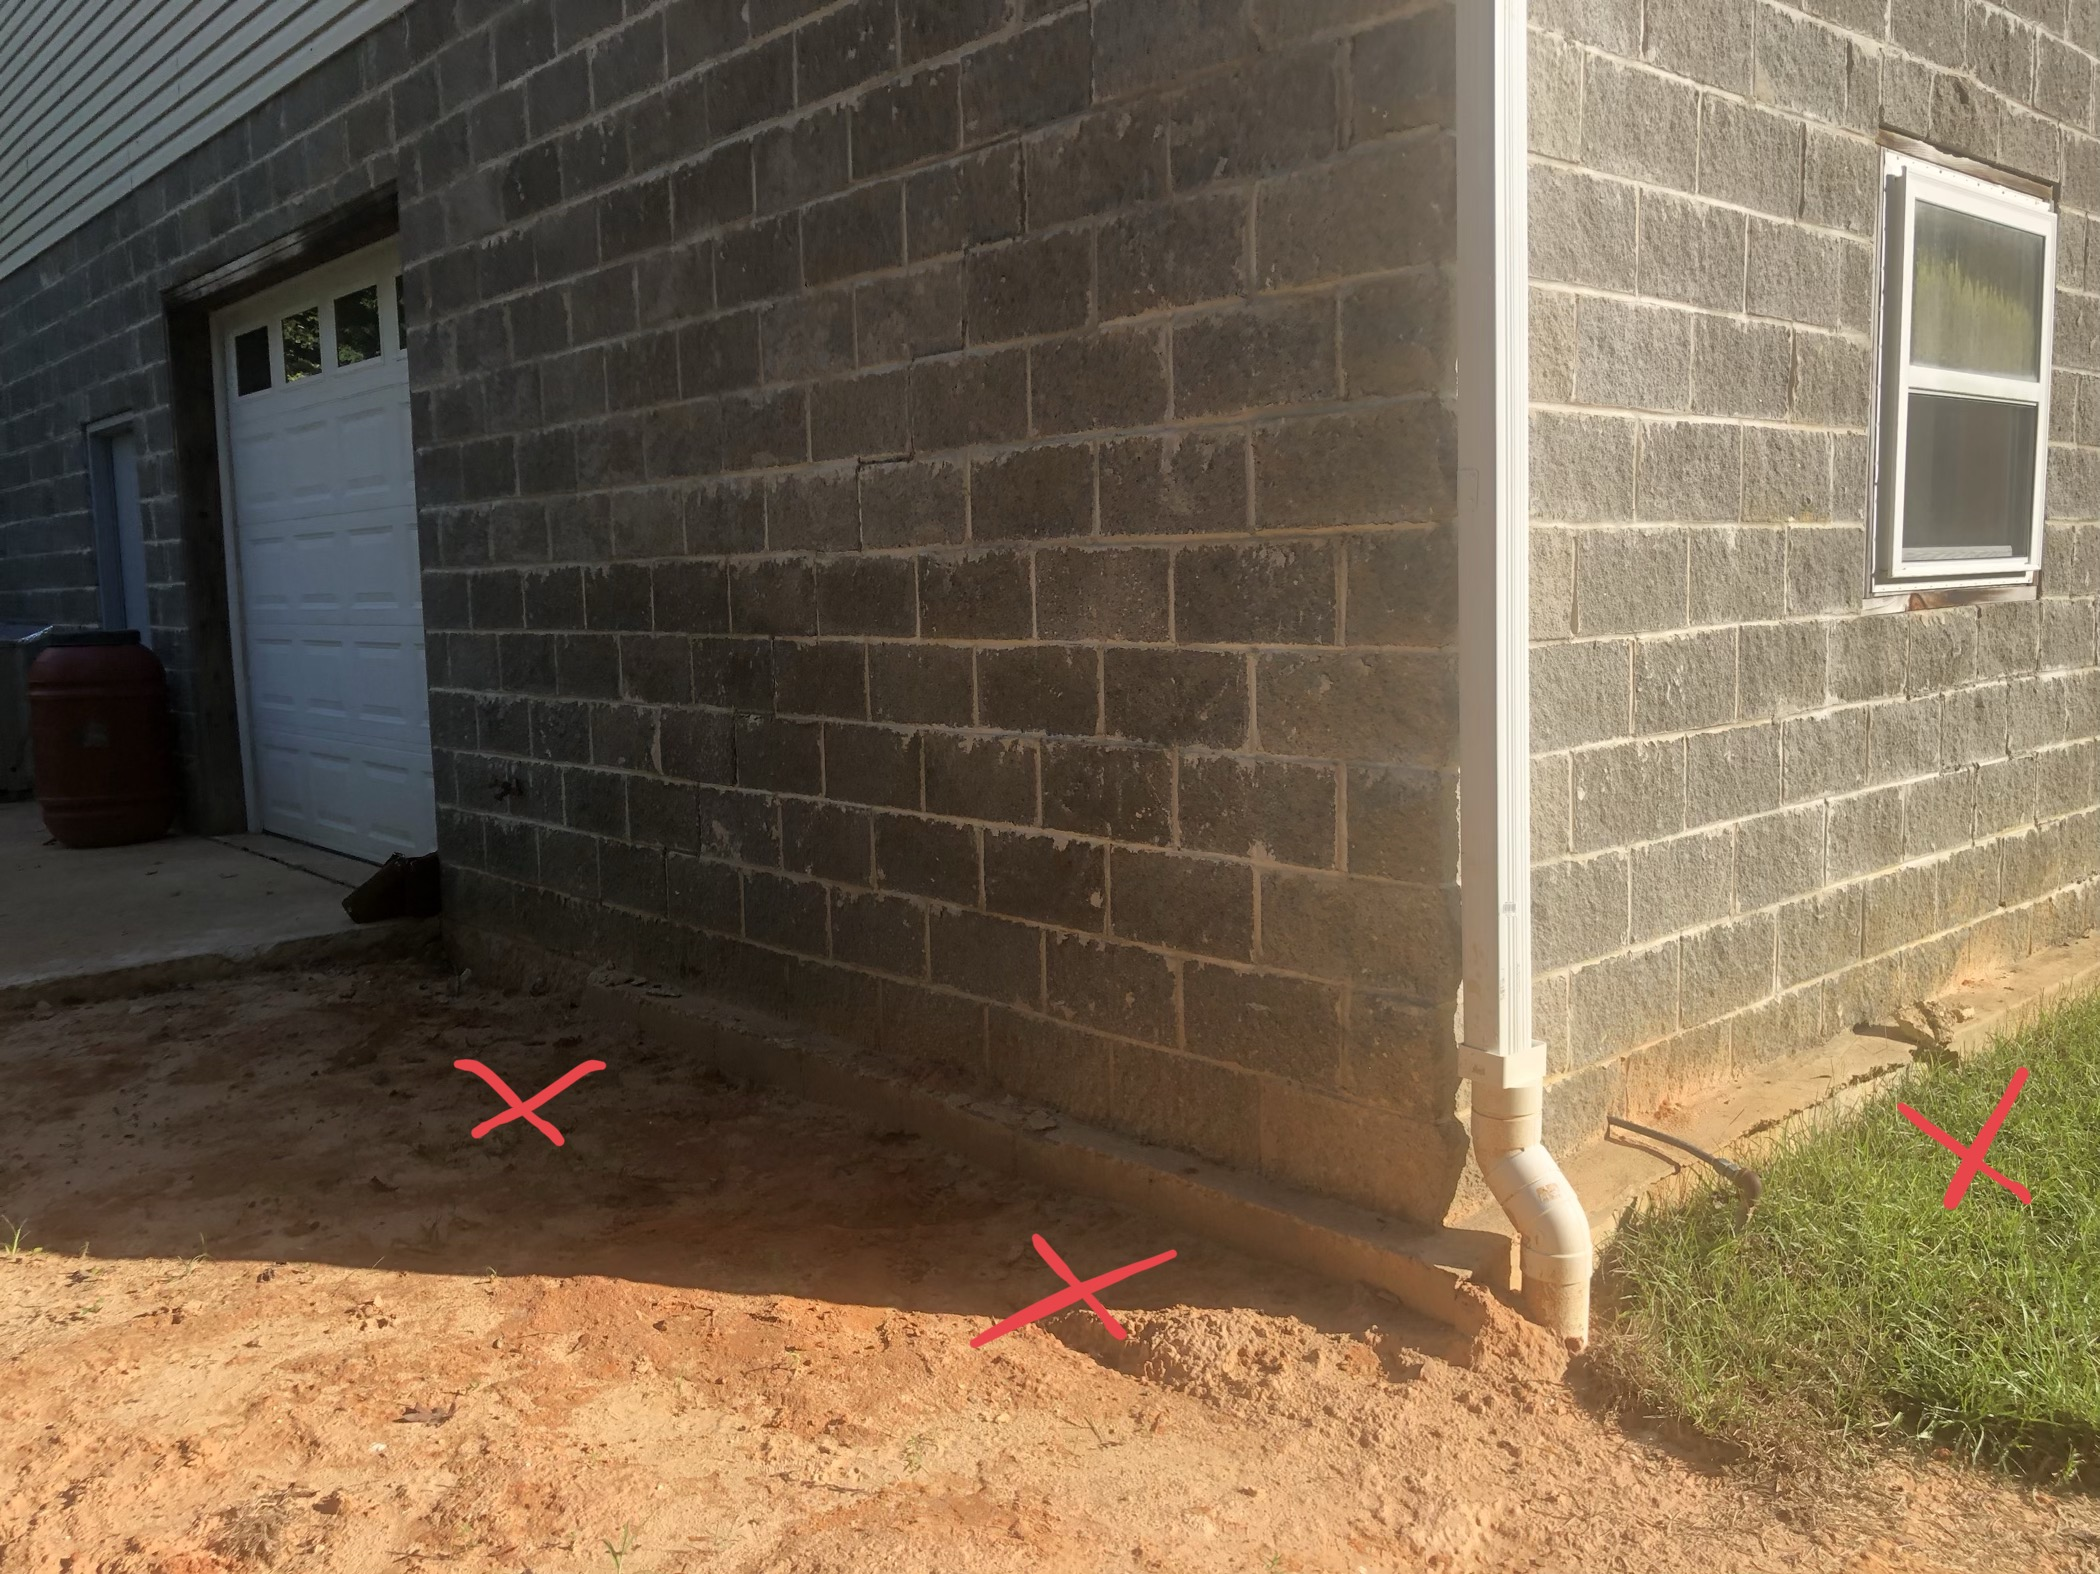 Stair stepping crack on exterior block wall